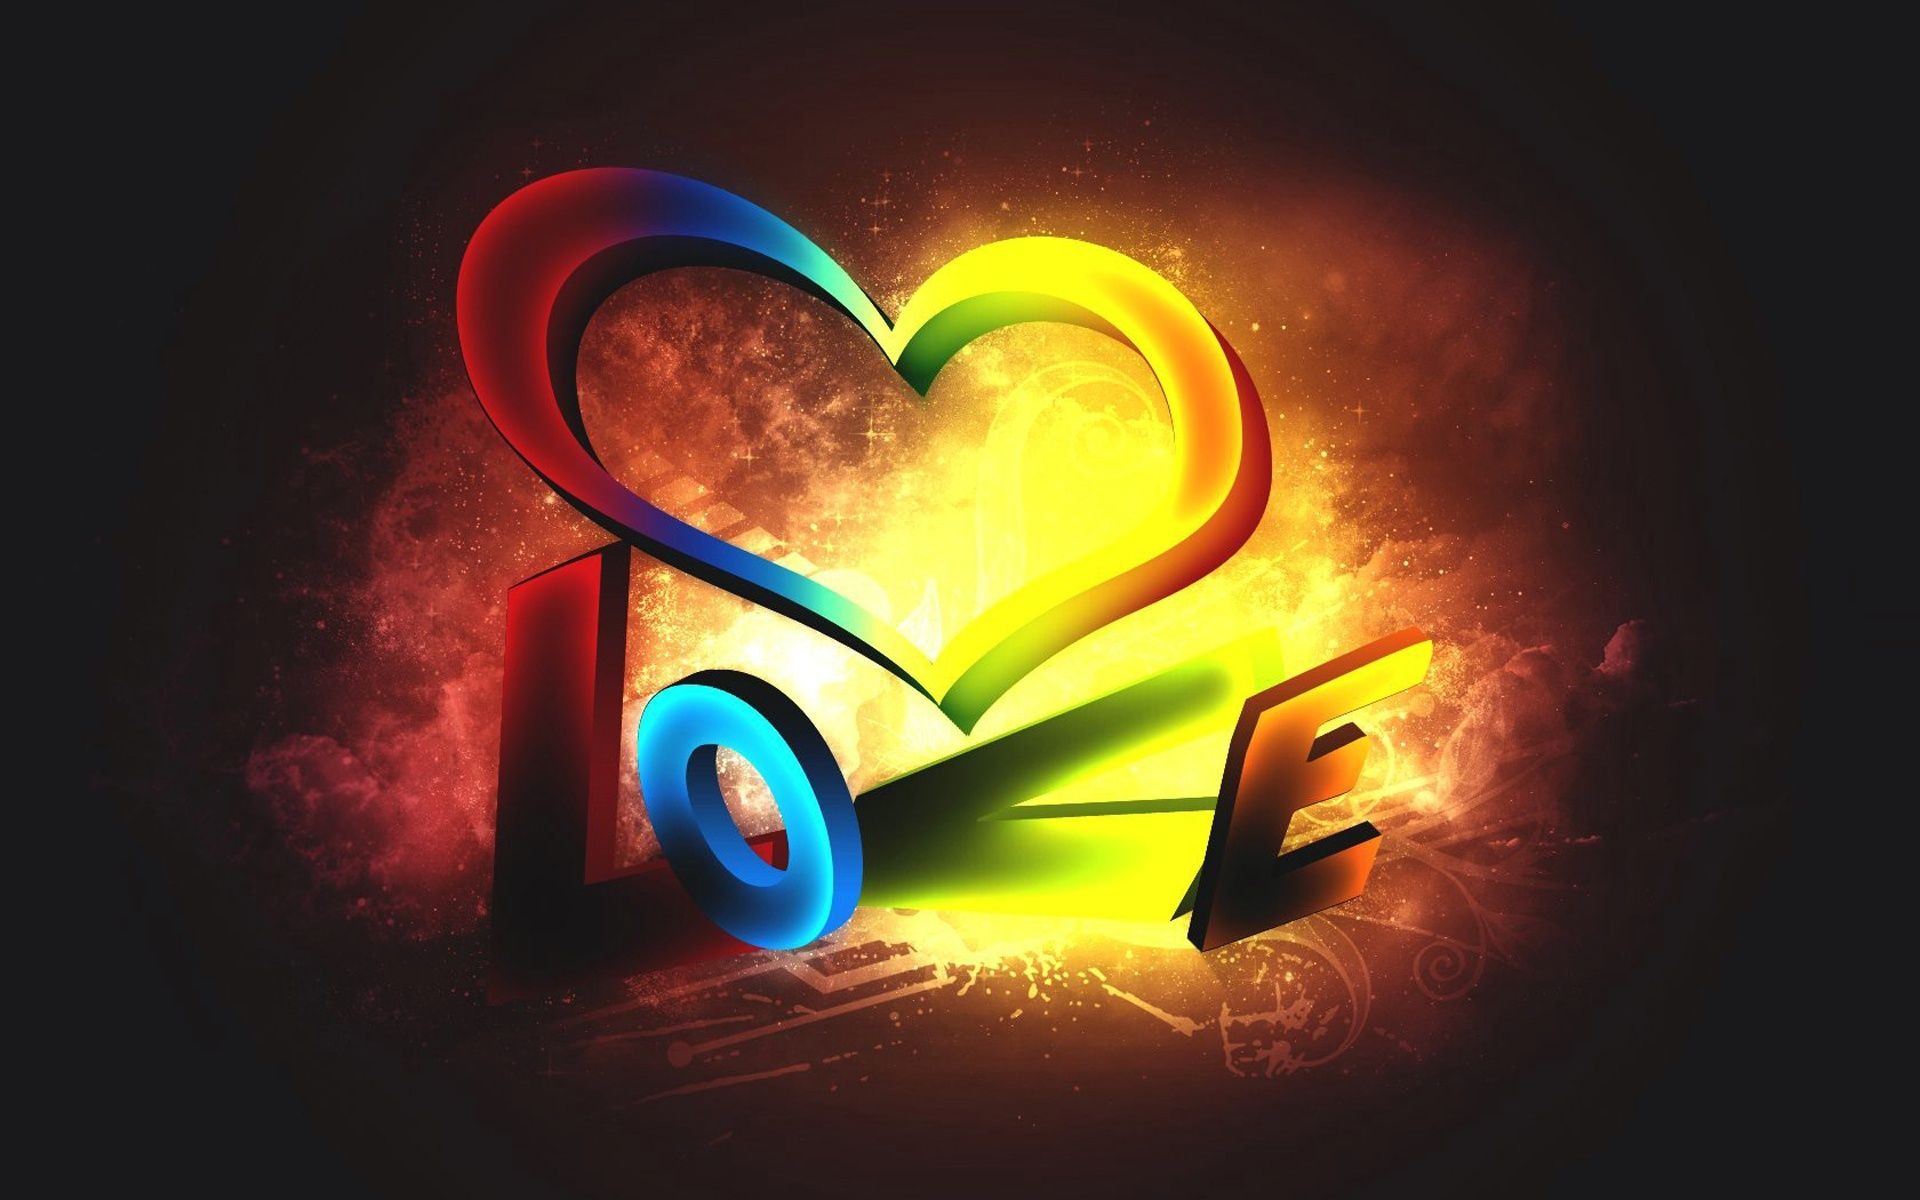 Hd wallpaper of love - 3d Love Art Pictures Wallpapers Of Love Hd